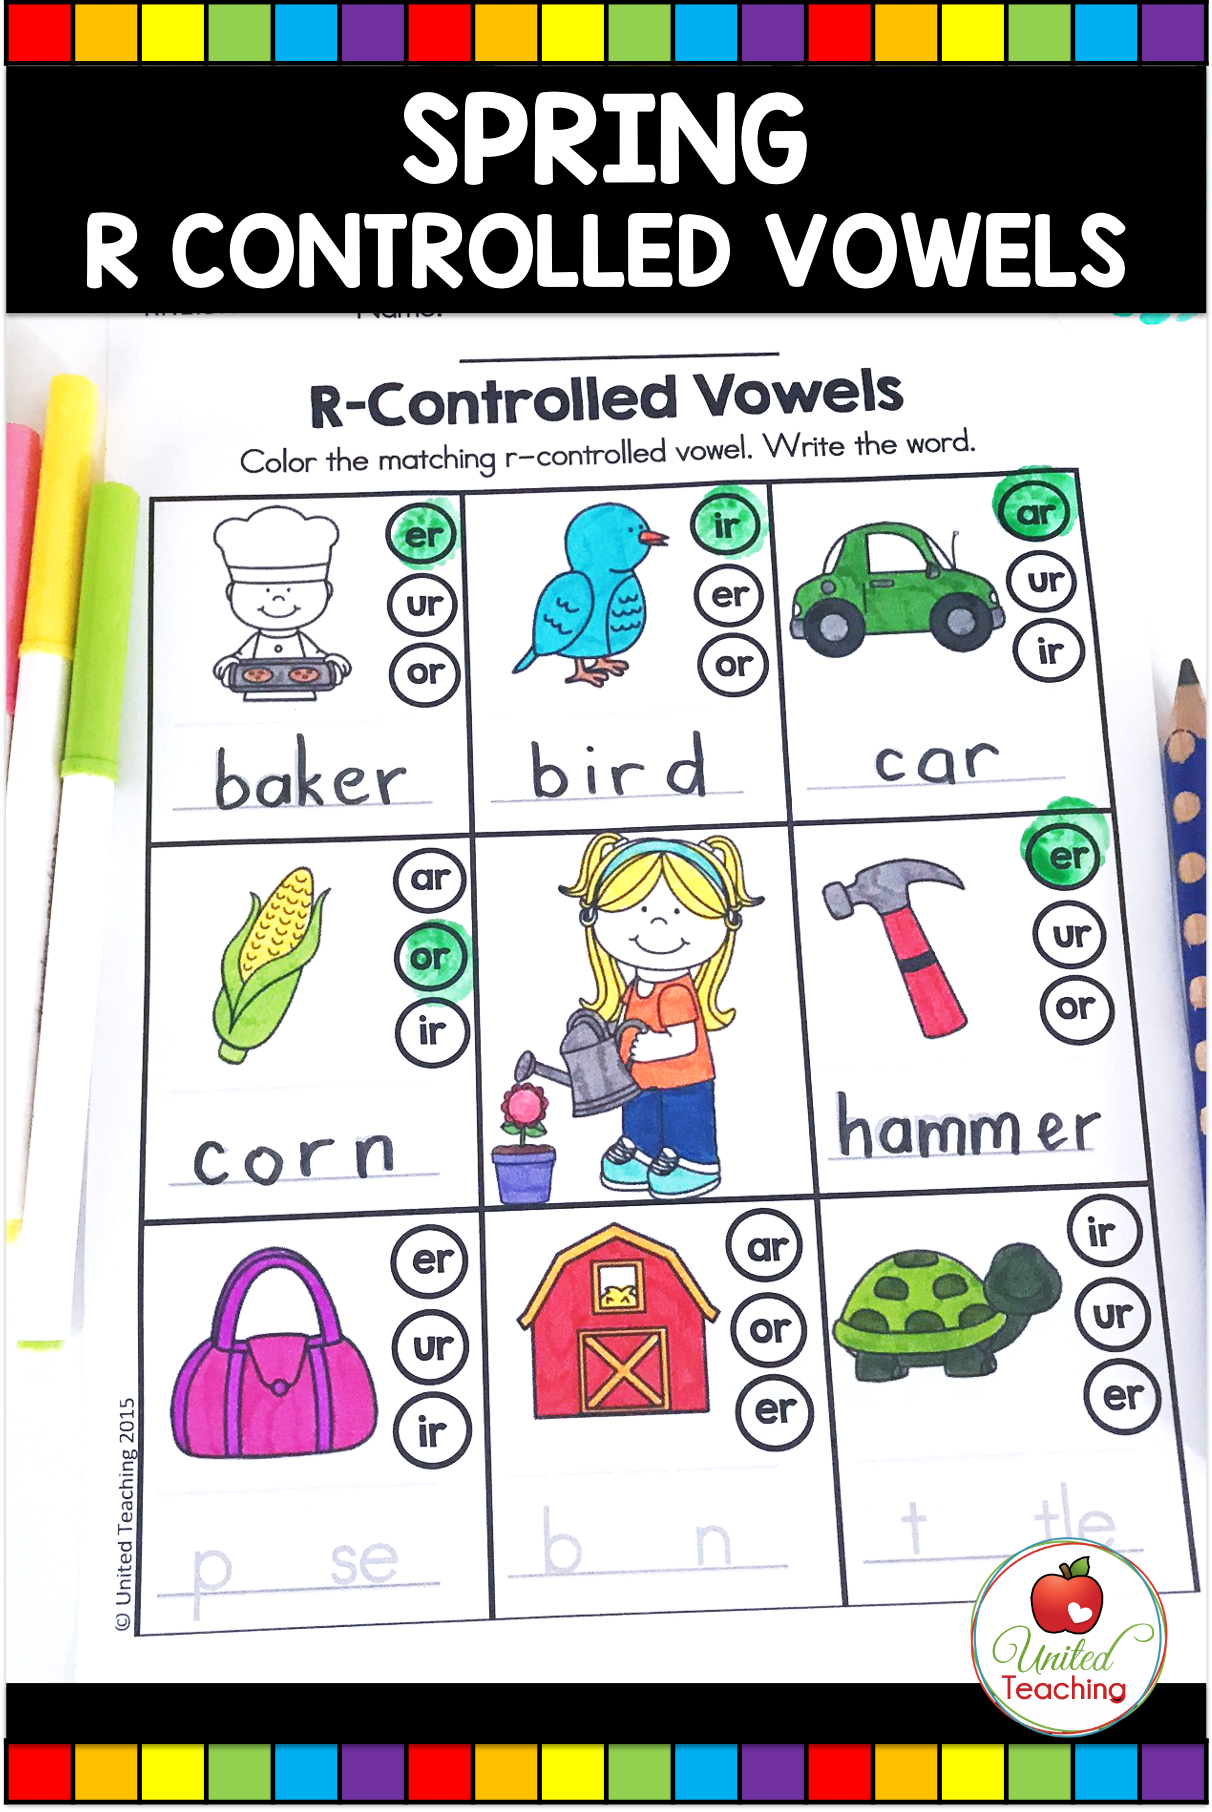 Spring Math and Literacy Activities (1st Grade) - United Teaching   R  controlled vowels activities [ 1812 x 1212 Pixel ]